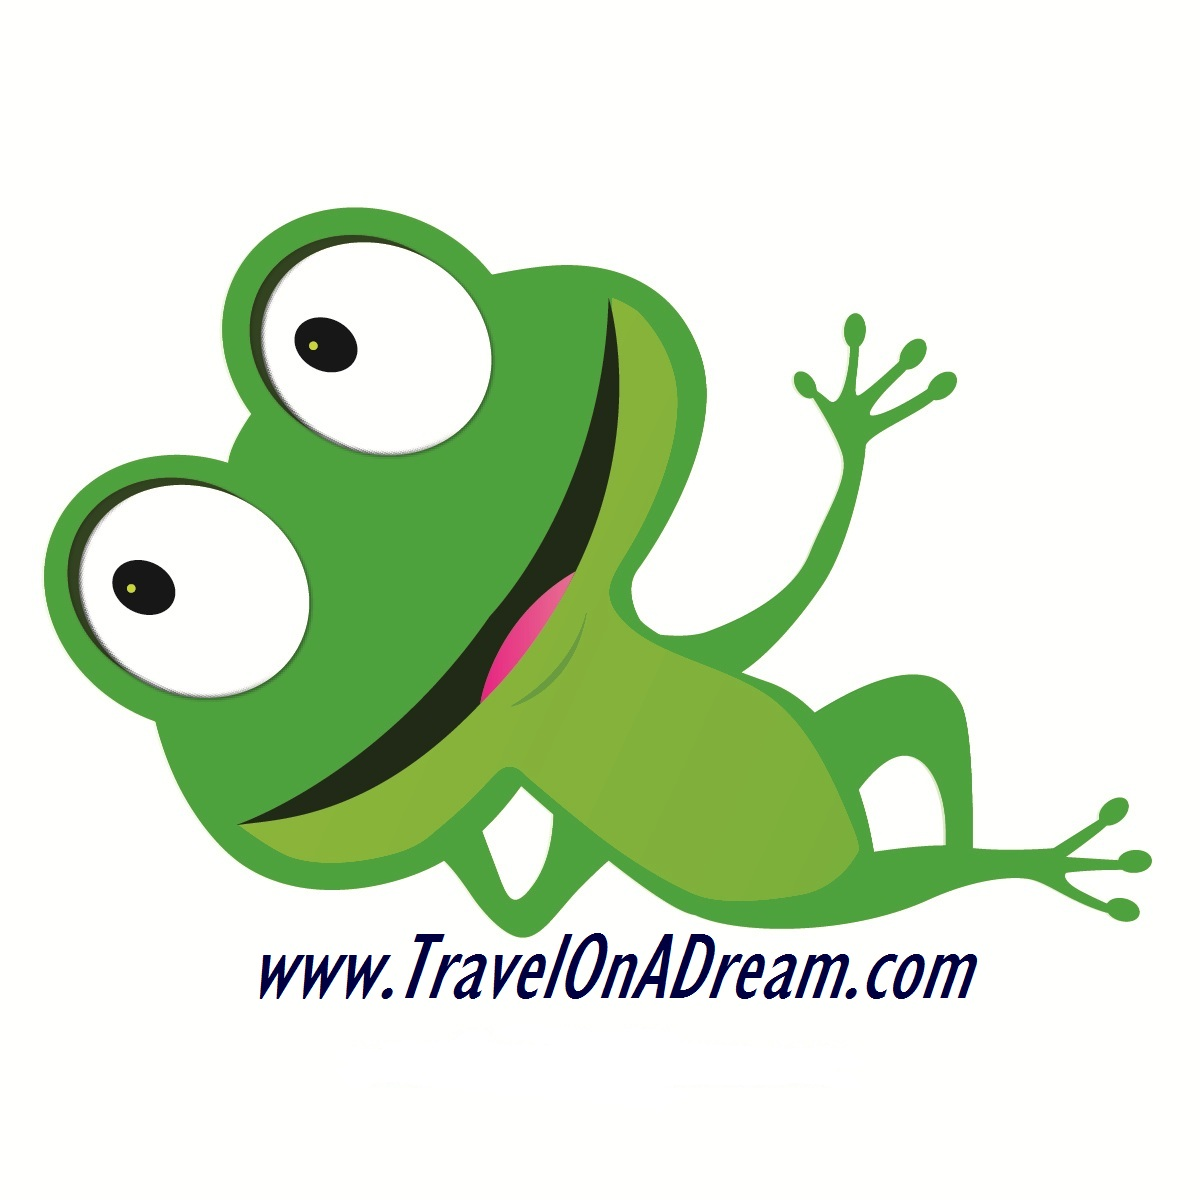 Why does the frog have a dream